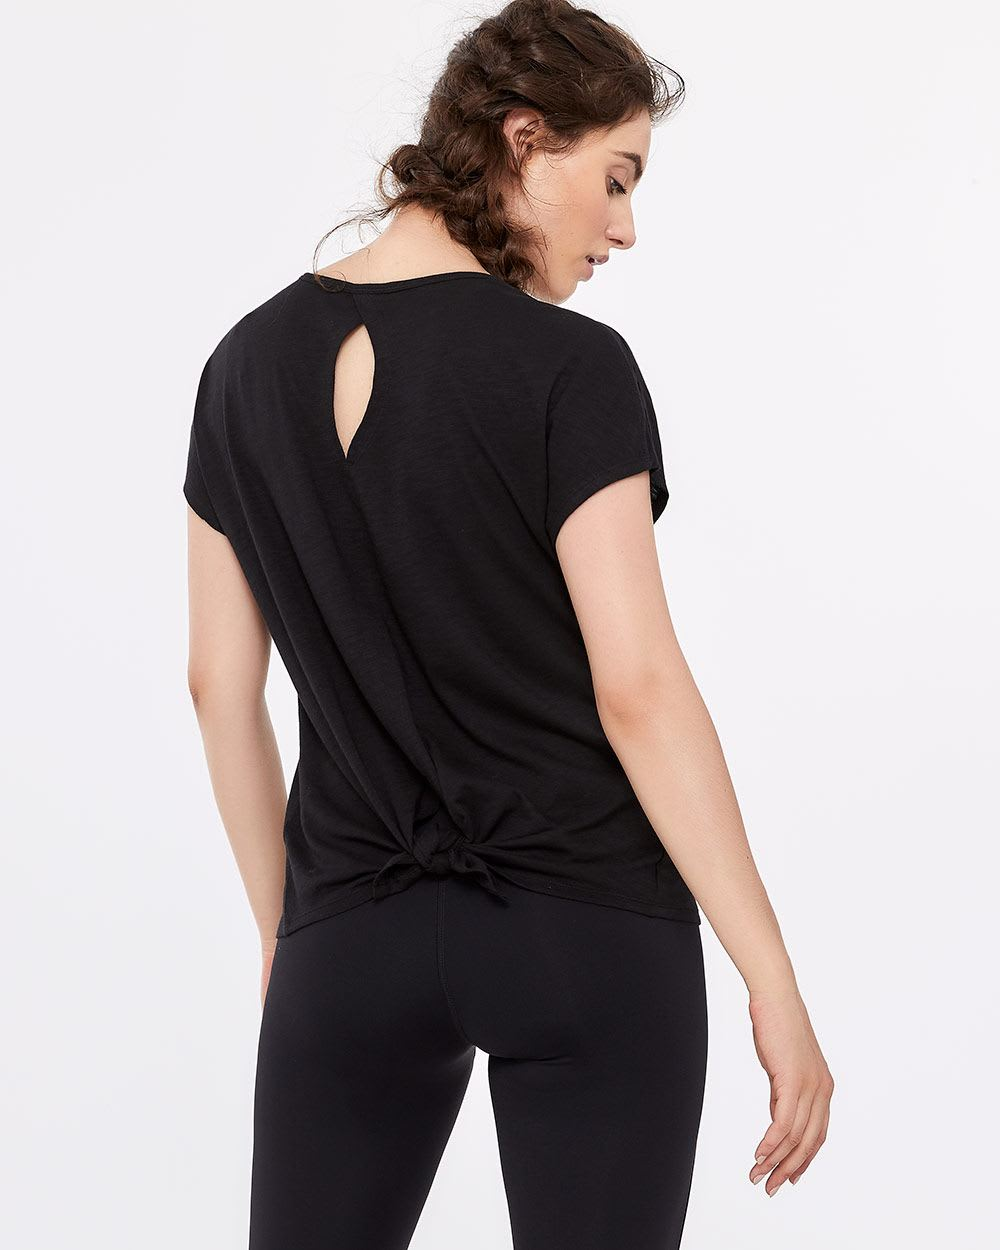 Hyba Back Tie and Keyhole Printed Tee